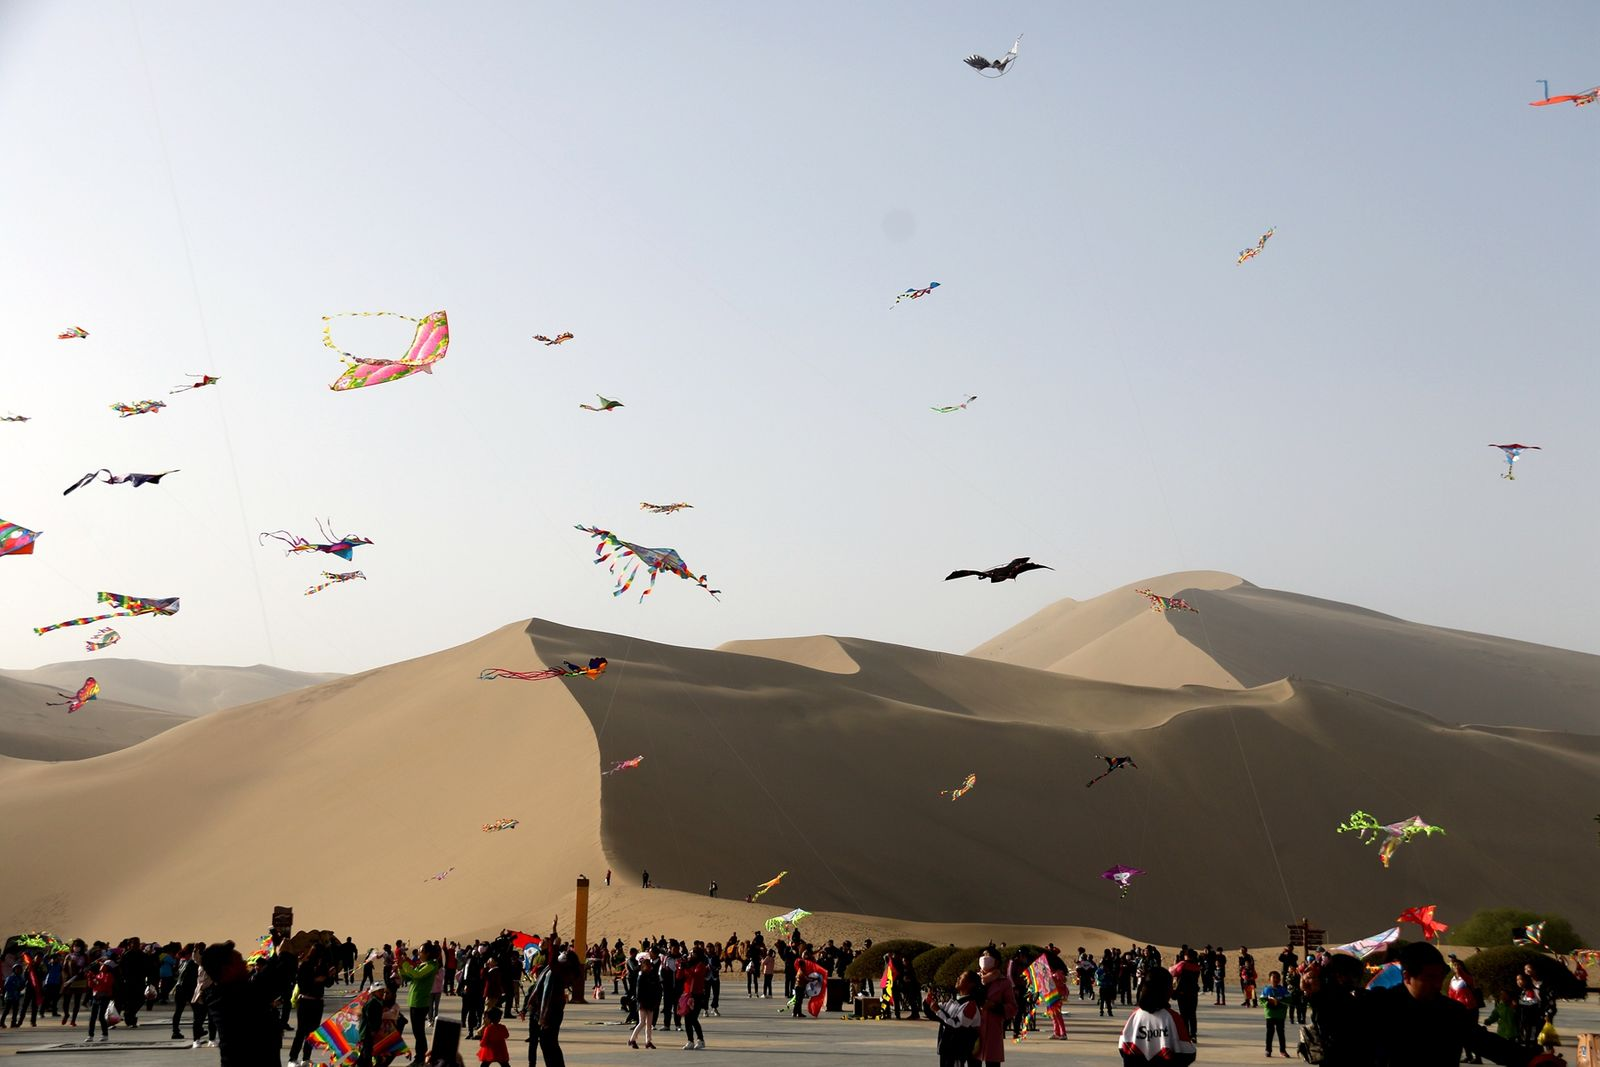 Flying Kites Event At Echoing-Sand Mountain In Dunhuang